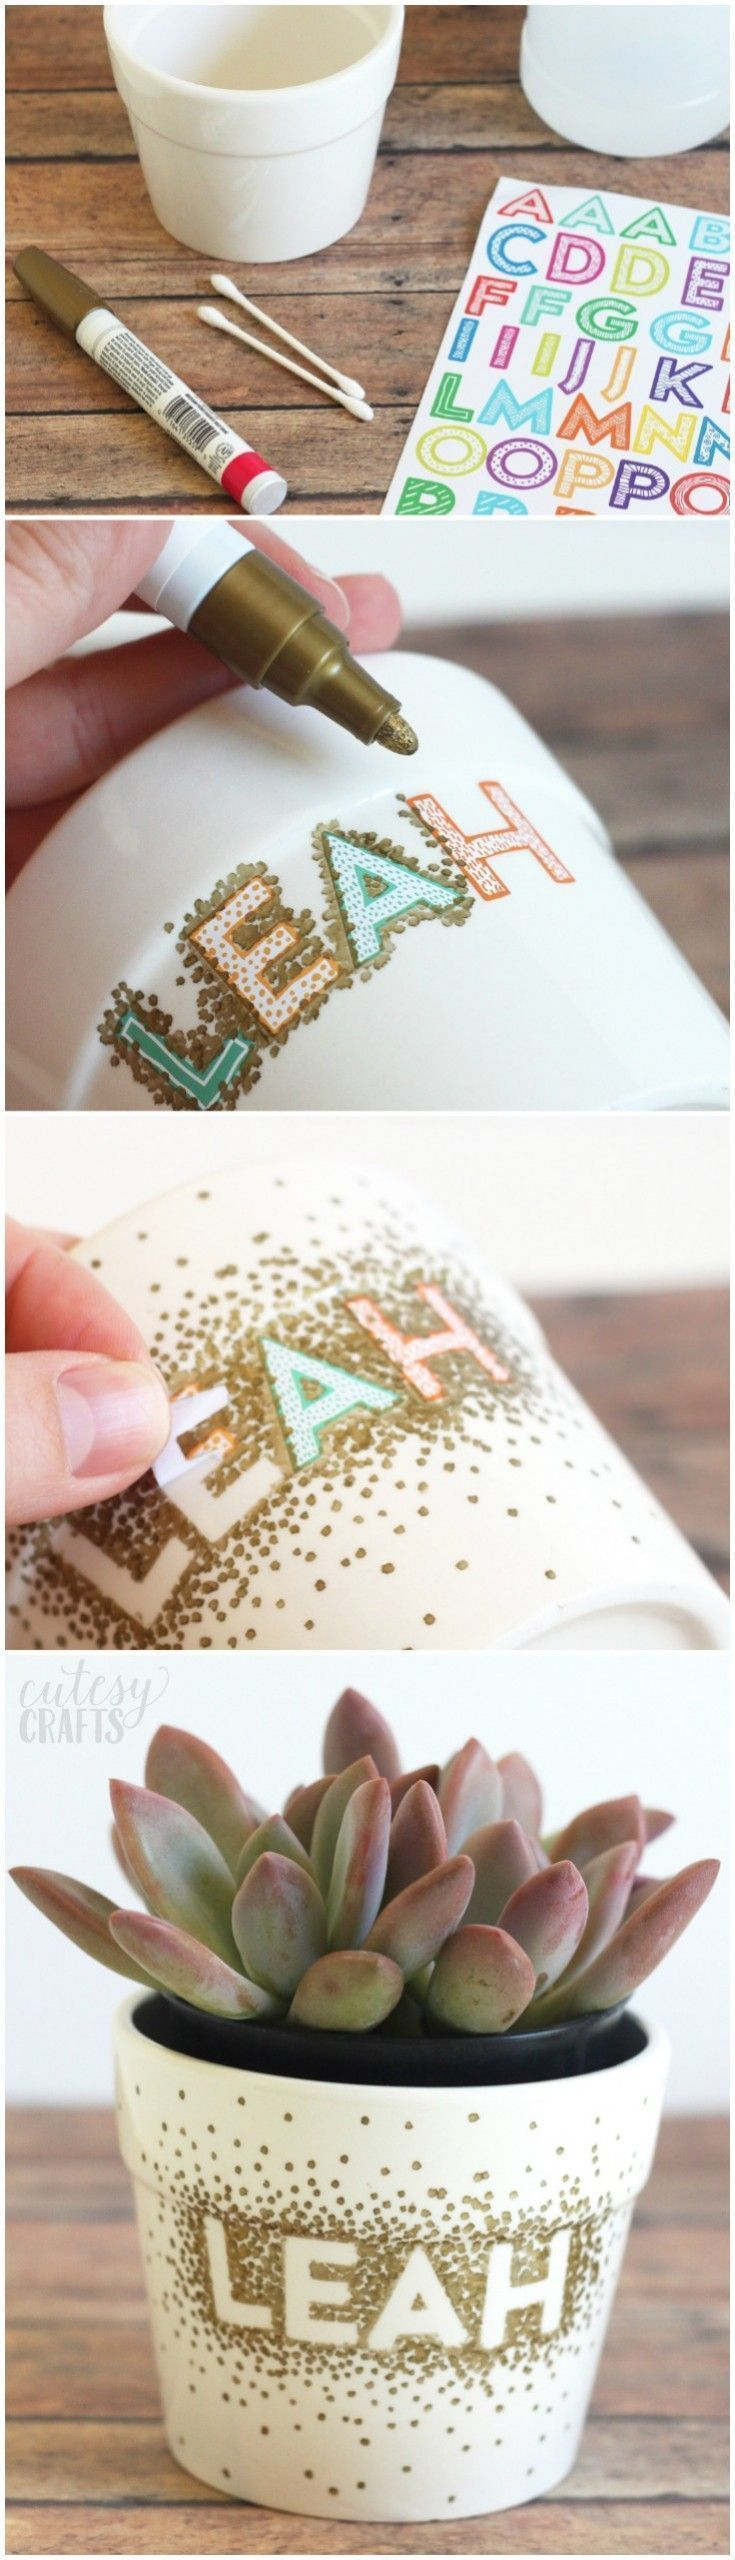 cool cool Use a Sharpie to make dots in this unique flower pot craft! It's so eas... by http://www.top-100-homedecorpictures.us/diy-crafts-home/cool-use-a-sharpie-to-make-dots-in-this-unique-flower-pot-craft-its-so-eas/